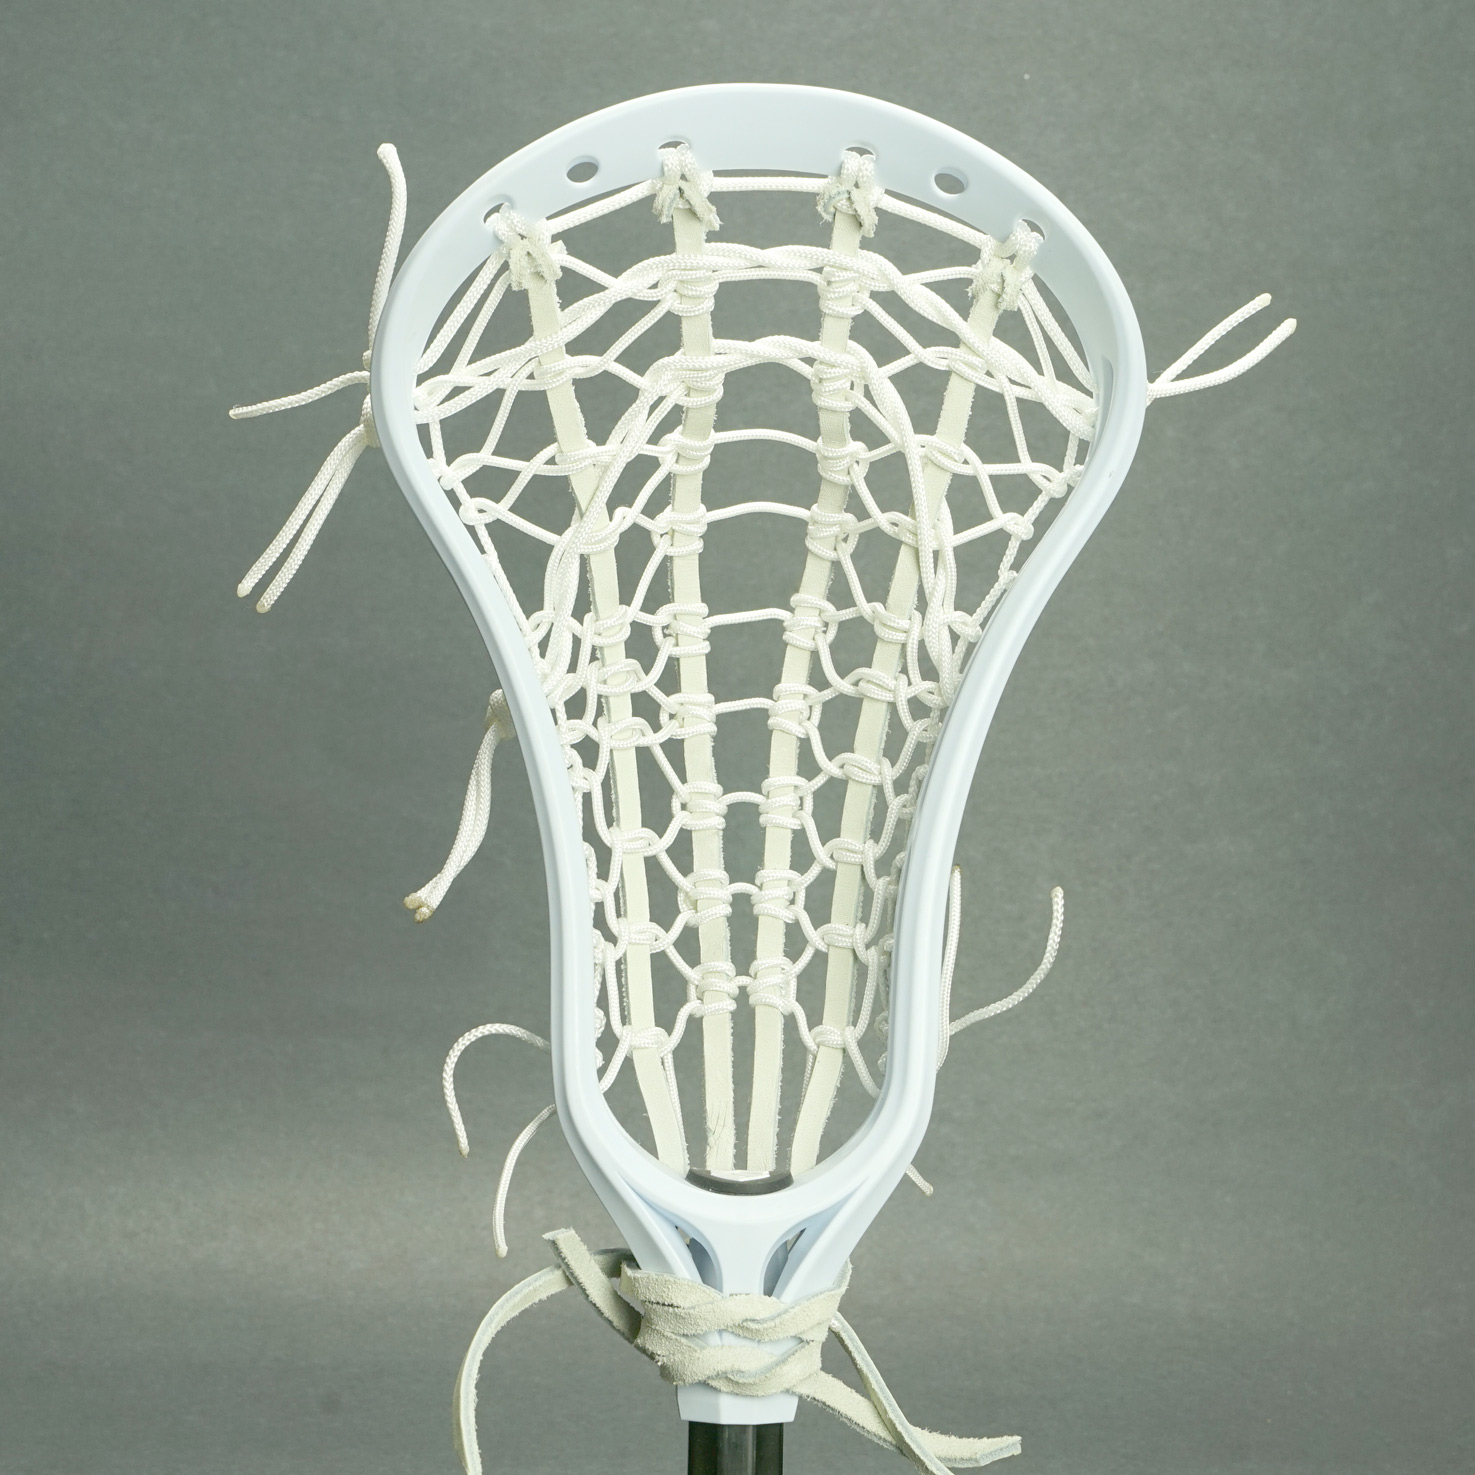 STRINGKING LEGEND PRESTRUNG LADDER POCKET